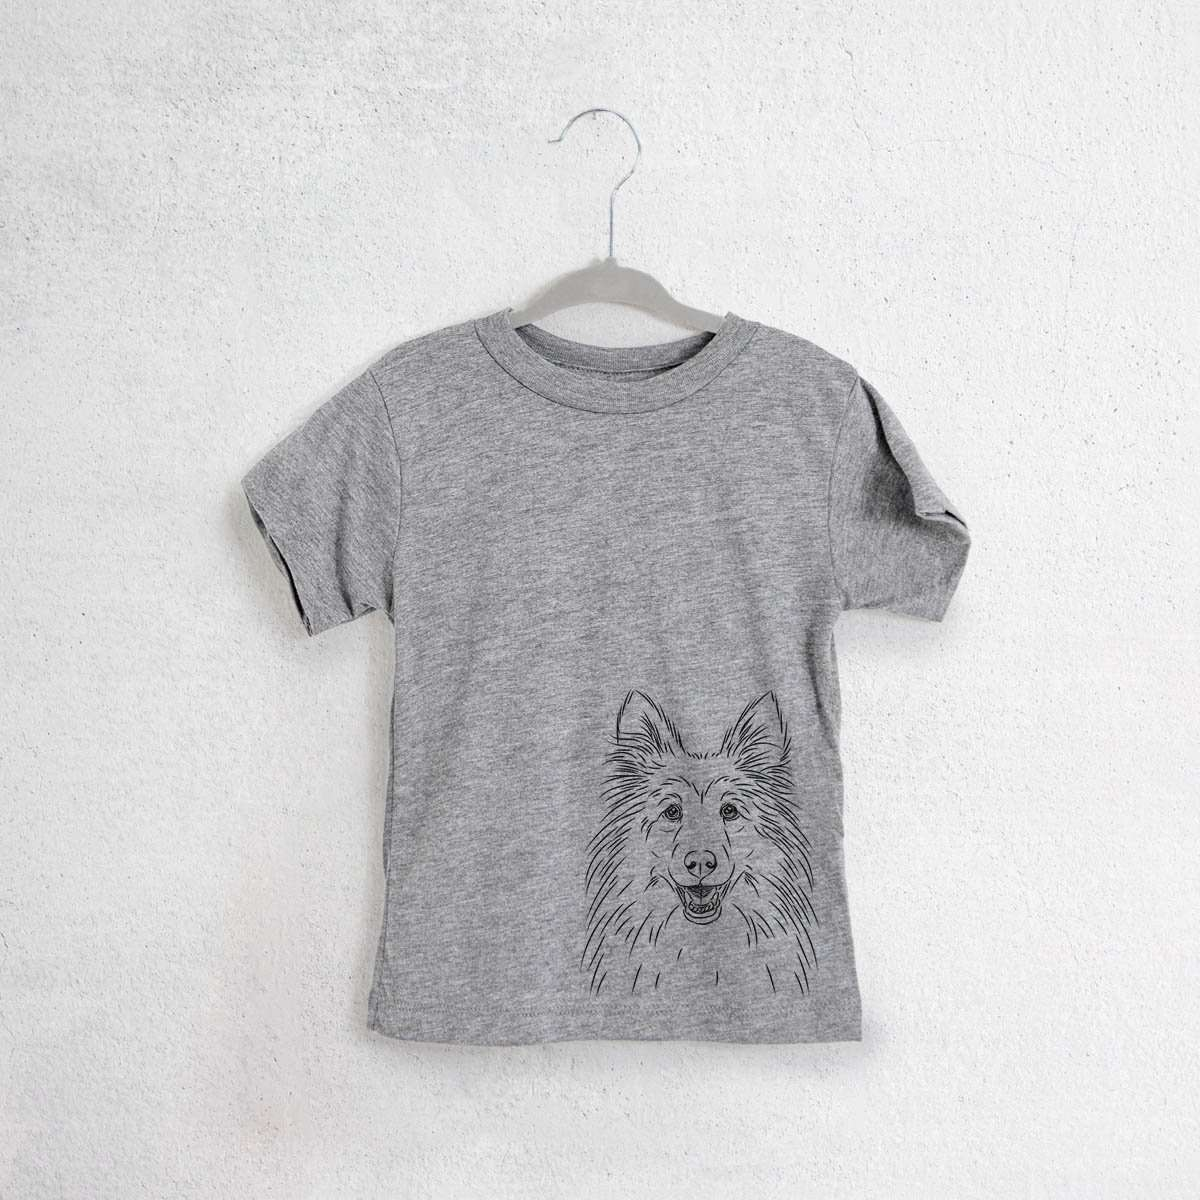 Sheldon the Shetland Sheepdog - Kids/Youth/Toddler Shirt